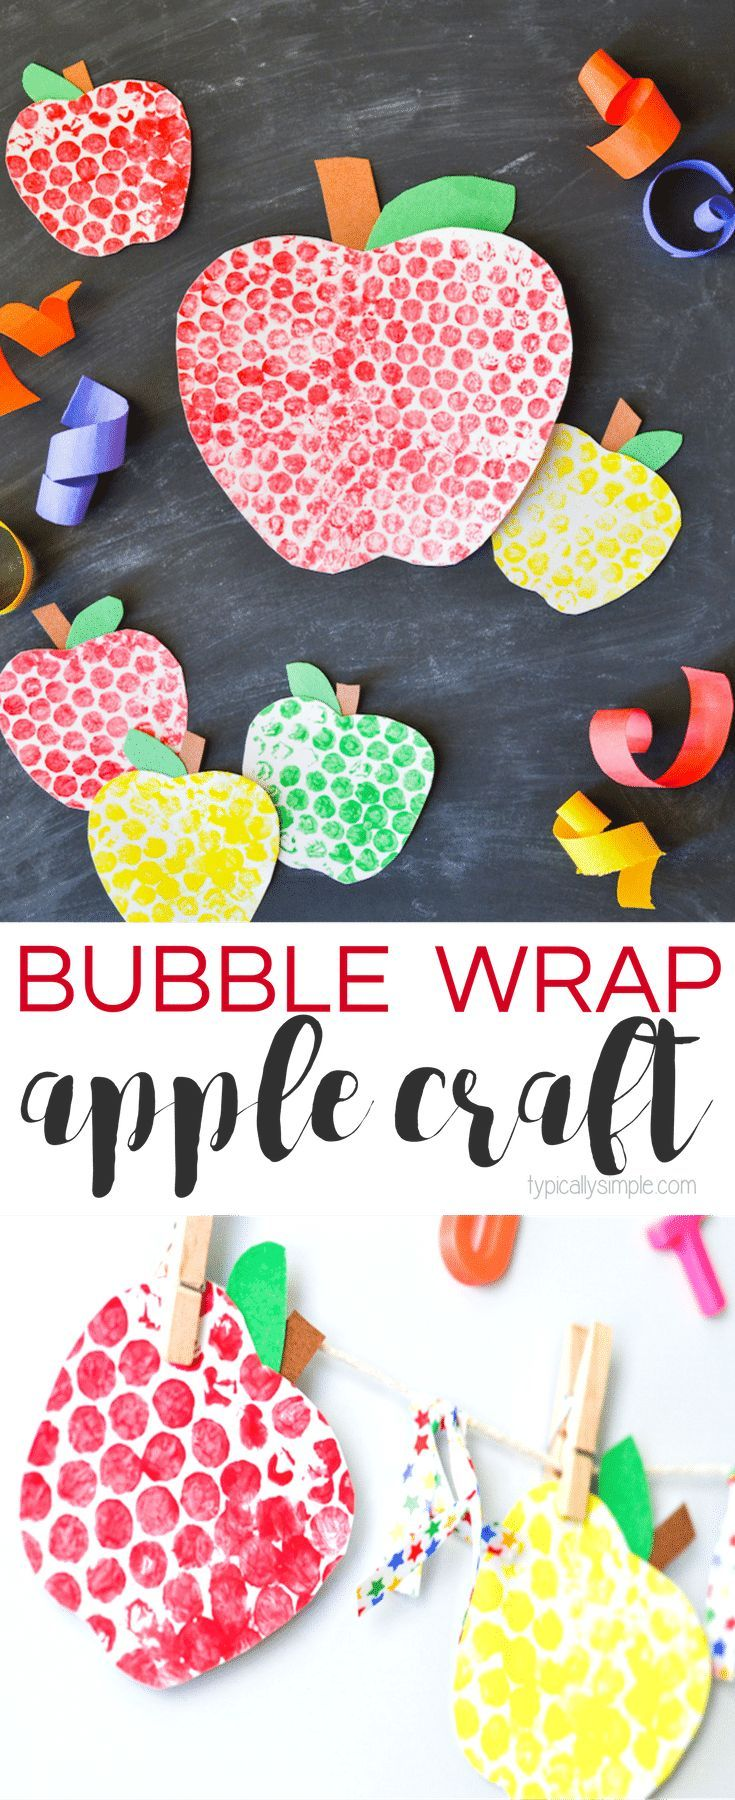 Cute bubble wrap painted apples. Such a fun cute craft for the kids!